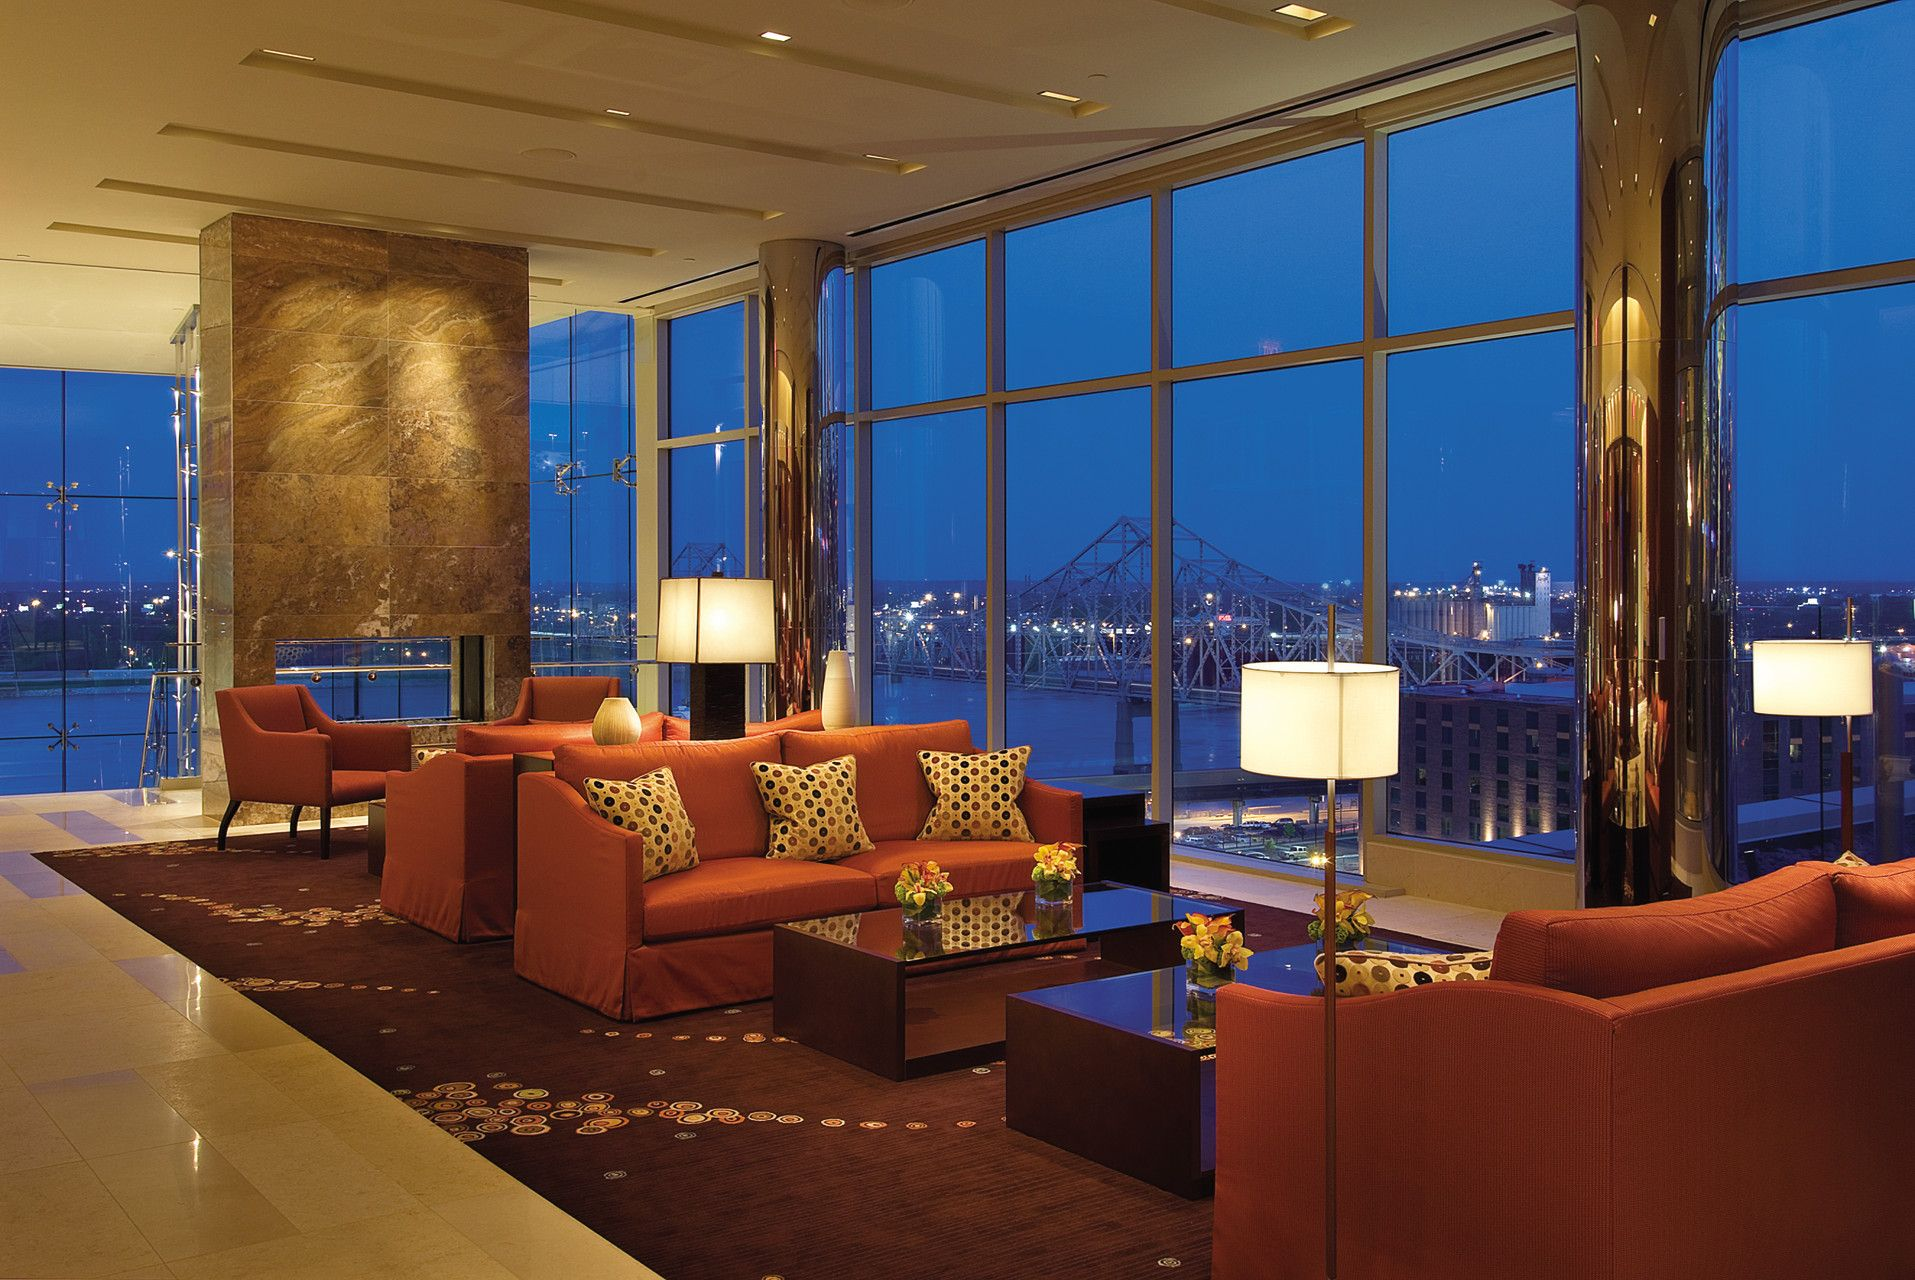 Contemporary Furniture With Modern Design Elements Welcome Guests In Our  8th Floor Lobby.